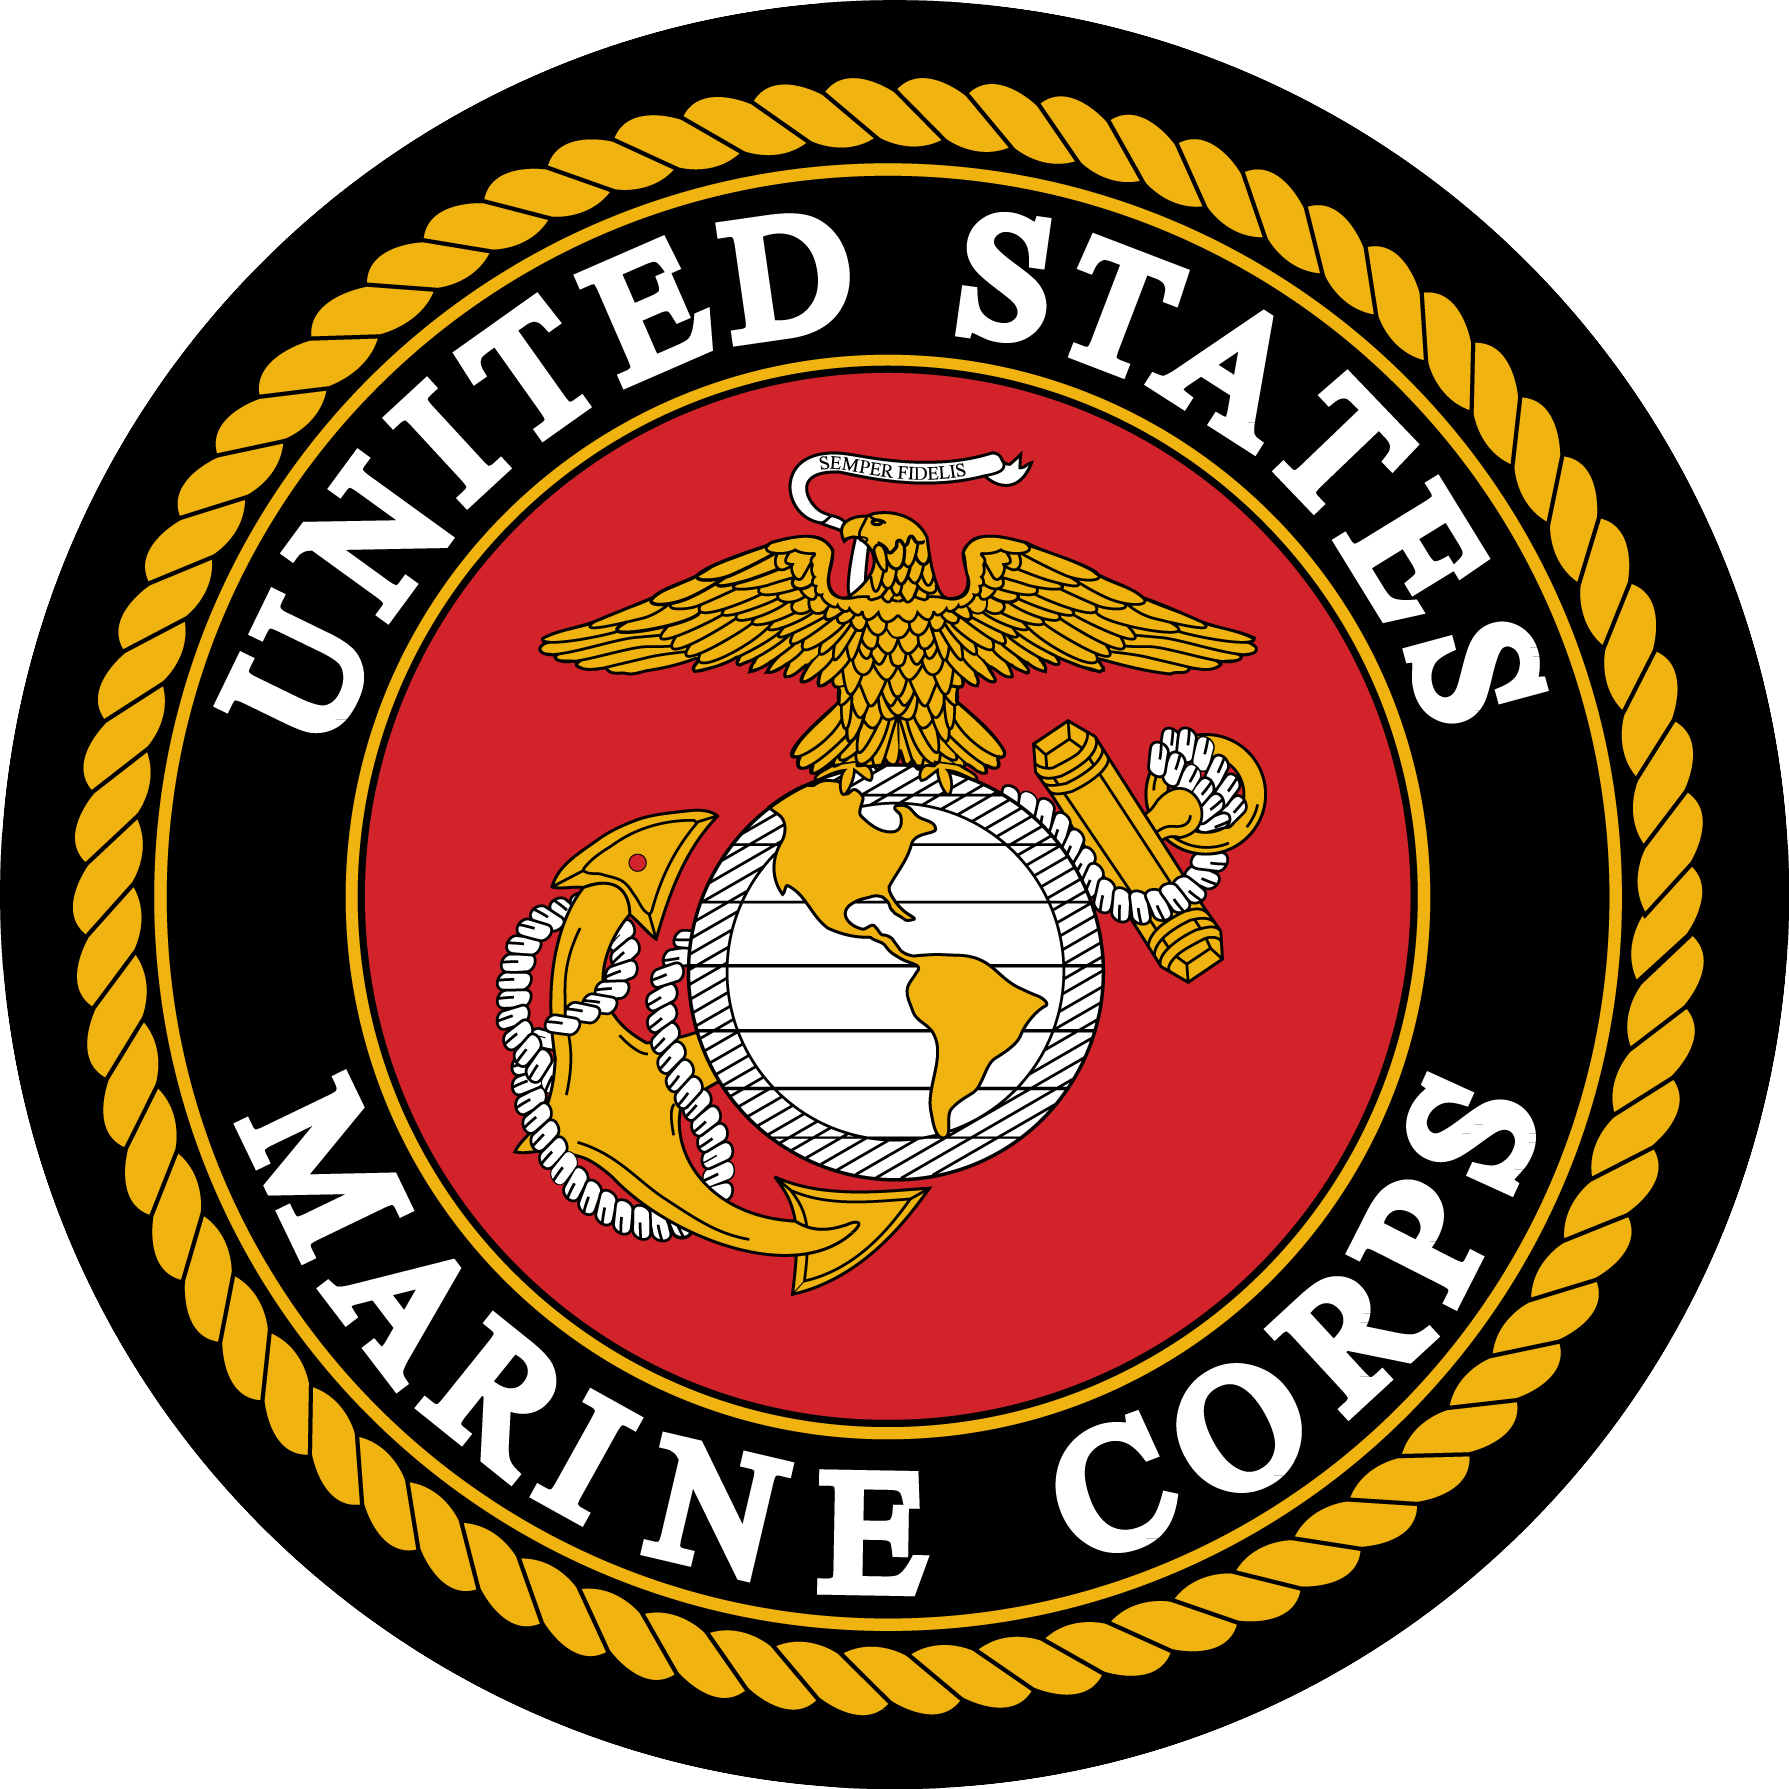 marine-corps-logo.png